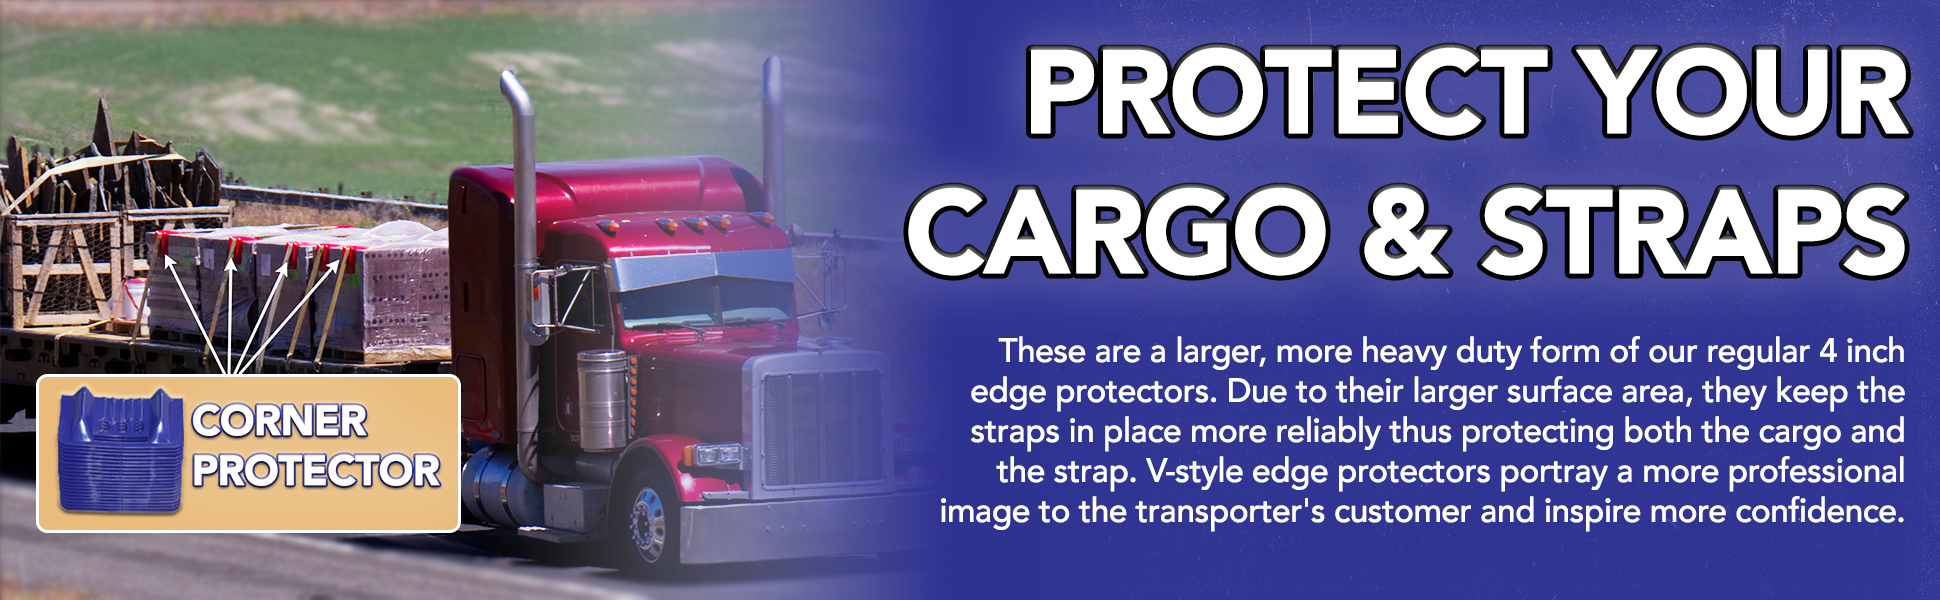 Protect your cargo protector